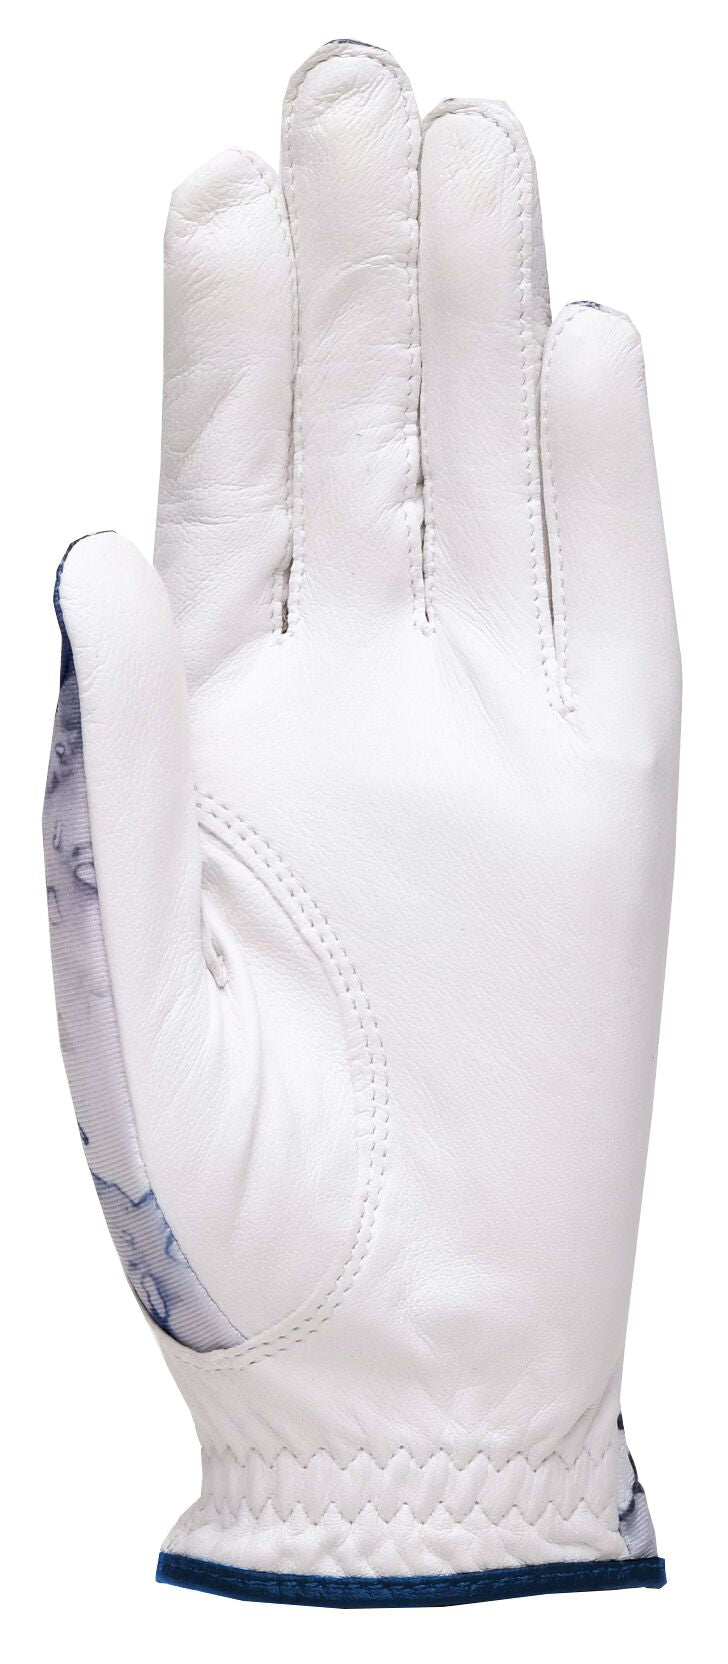 INDIGO POPPY Women's Golf Glove